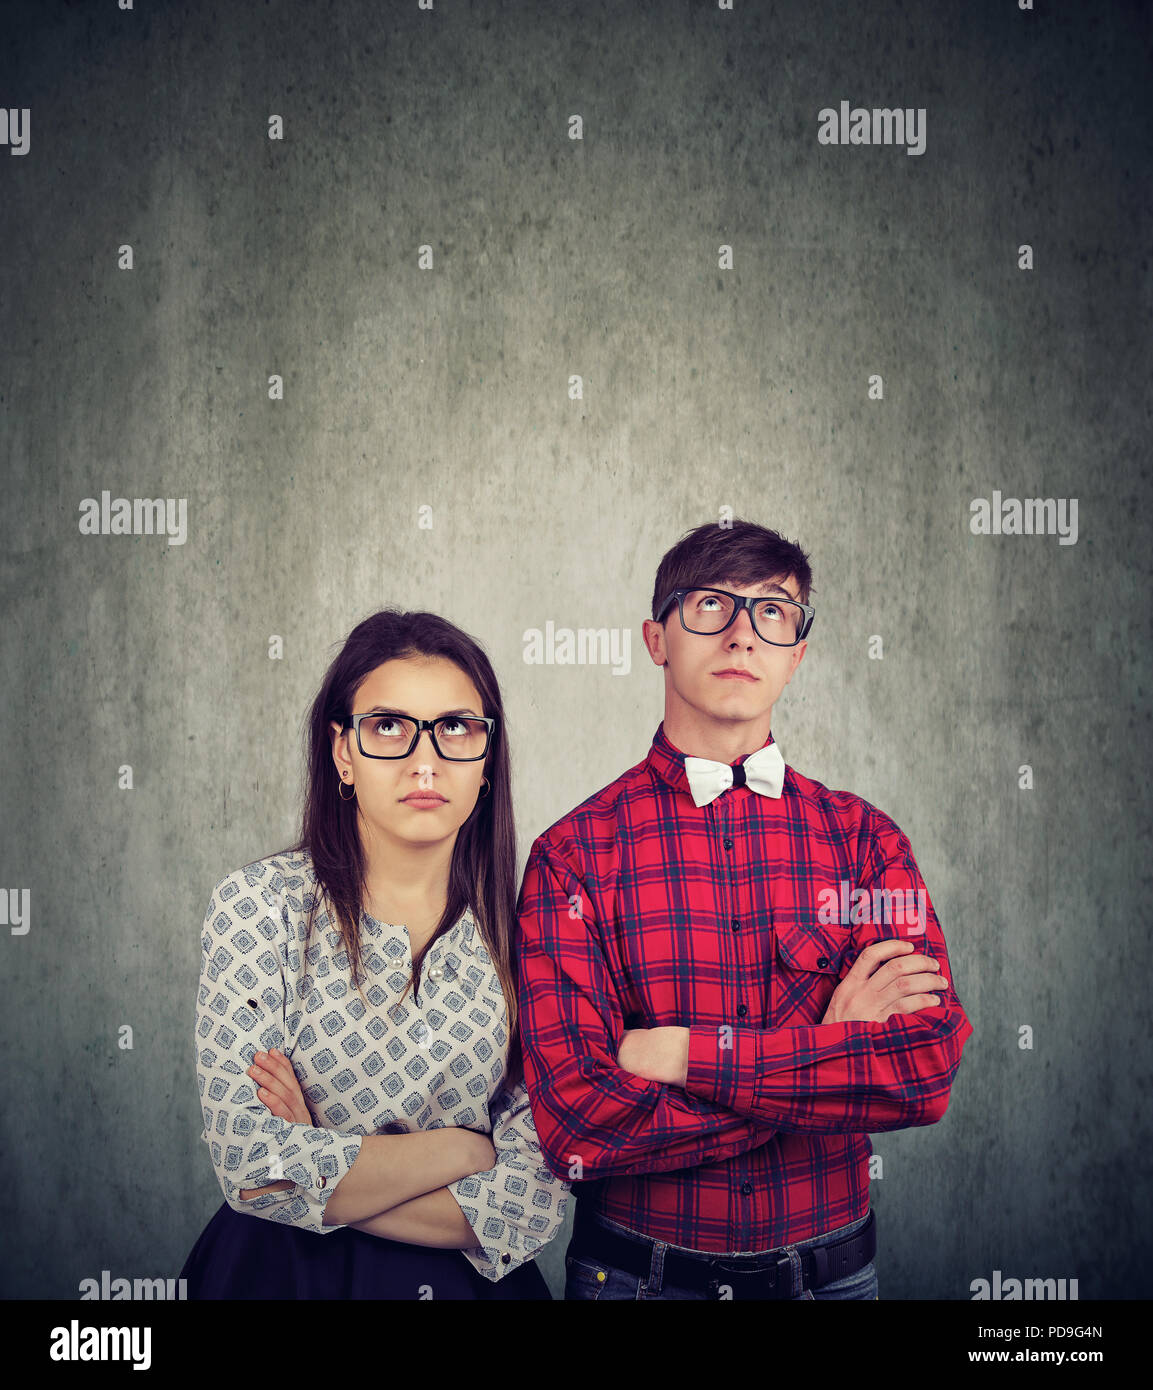 Young man and woman in glasses standing together with hands crossed and looking up being grumpy and having confrontation - Stock Image